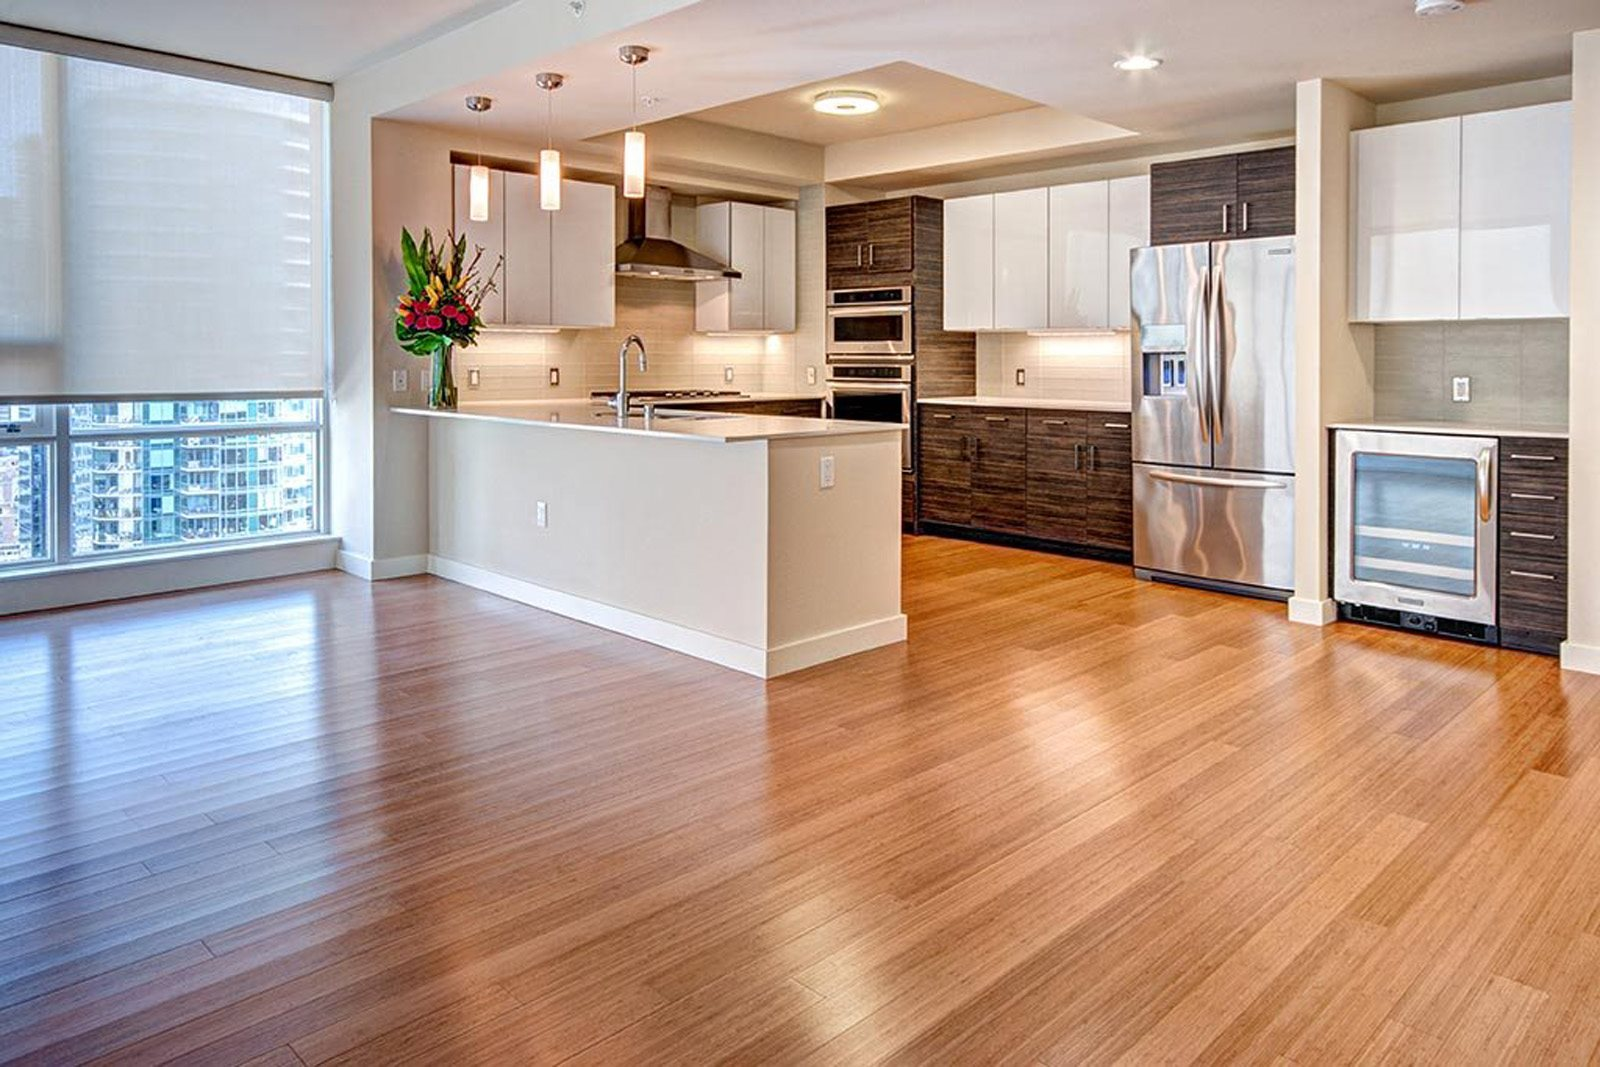 Top-of-the-line Kitchens at The Martin, Seattle, 98121